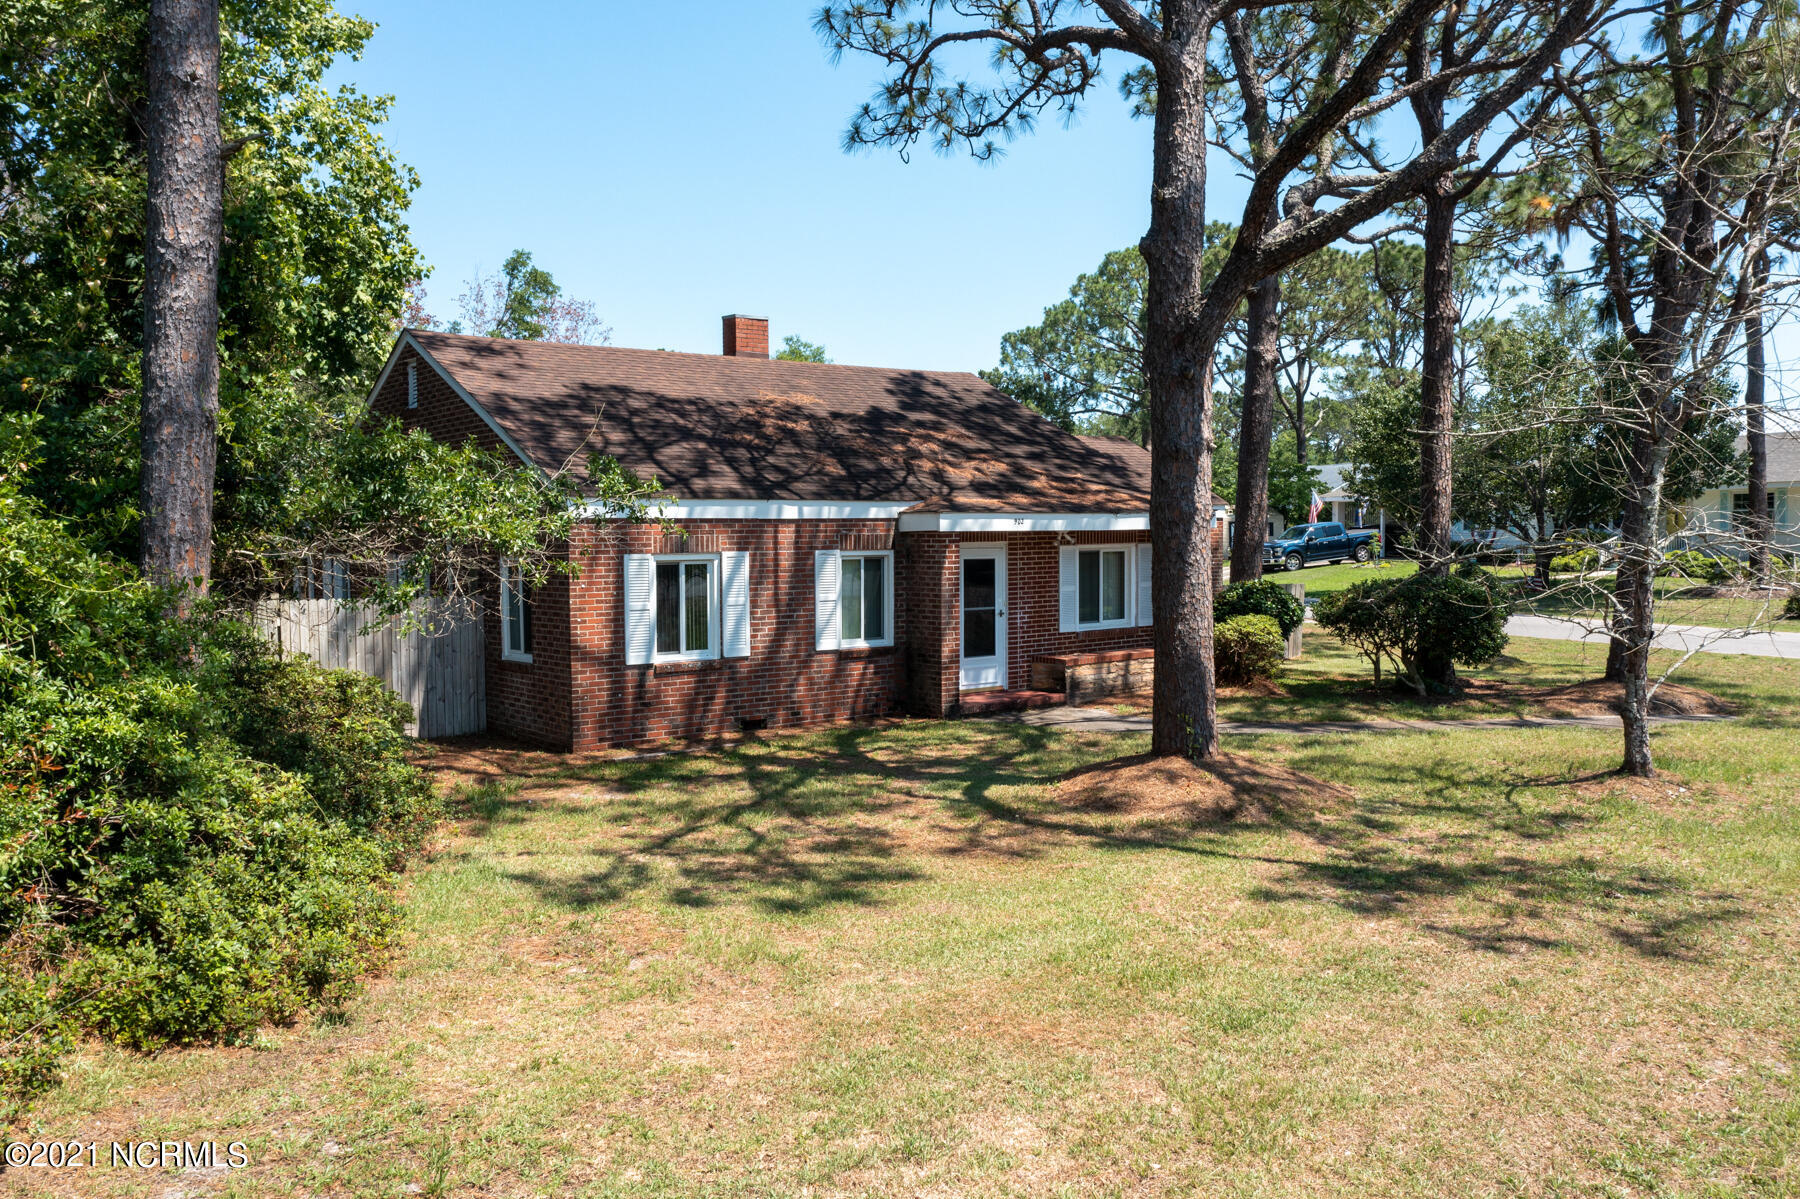 Quaint brick bungalow in the heart of downtown Southport, and only one block from the water. Priced  to be sold ''as-is'', so that you can make it your own. Extra wide lot with fenced in yard, a lovely screened porch and a one car garage. Don't let this location get away from you! Call today! Agents  see Agent Only Remarks.